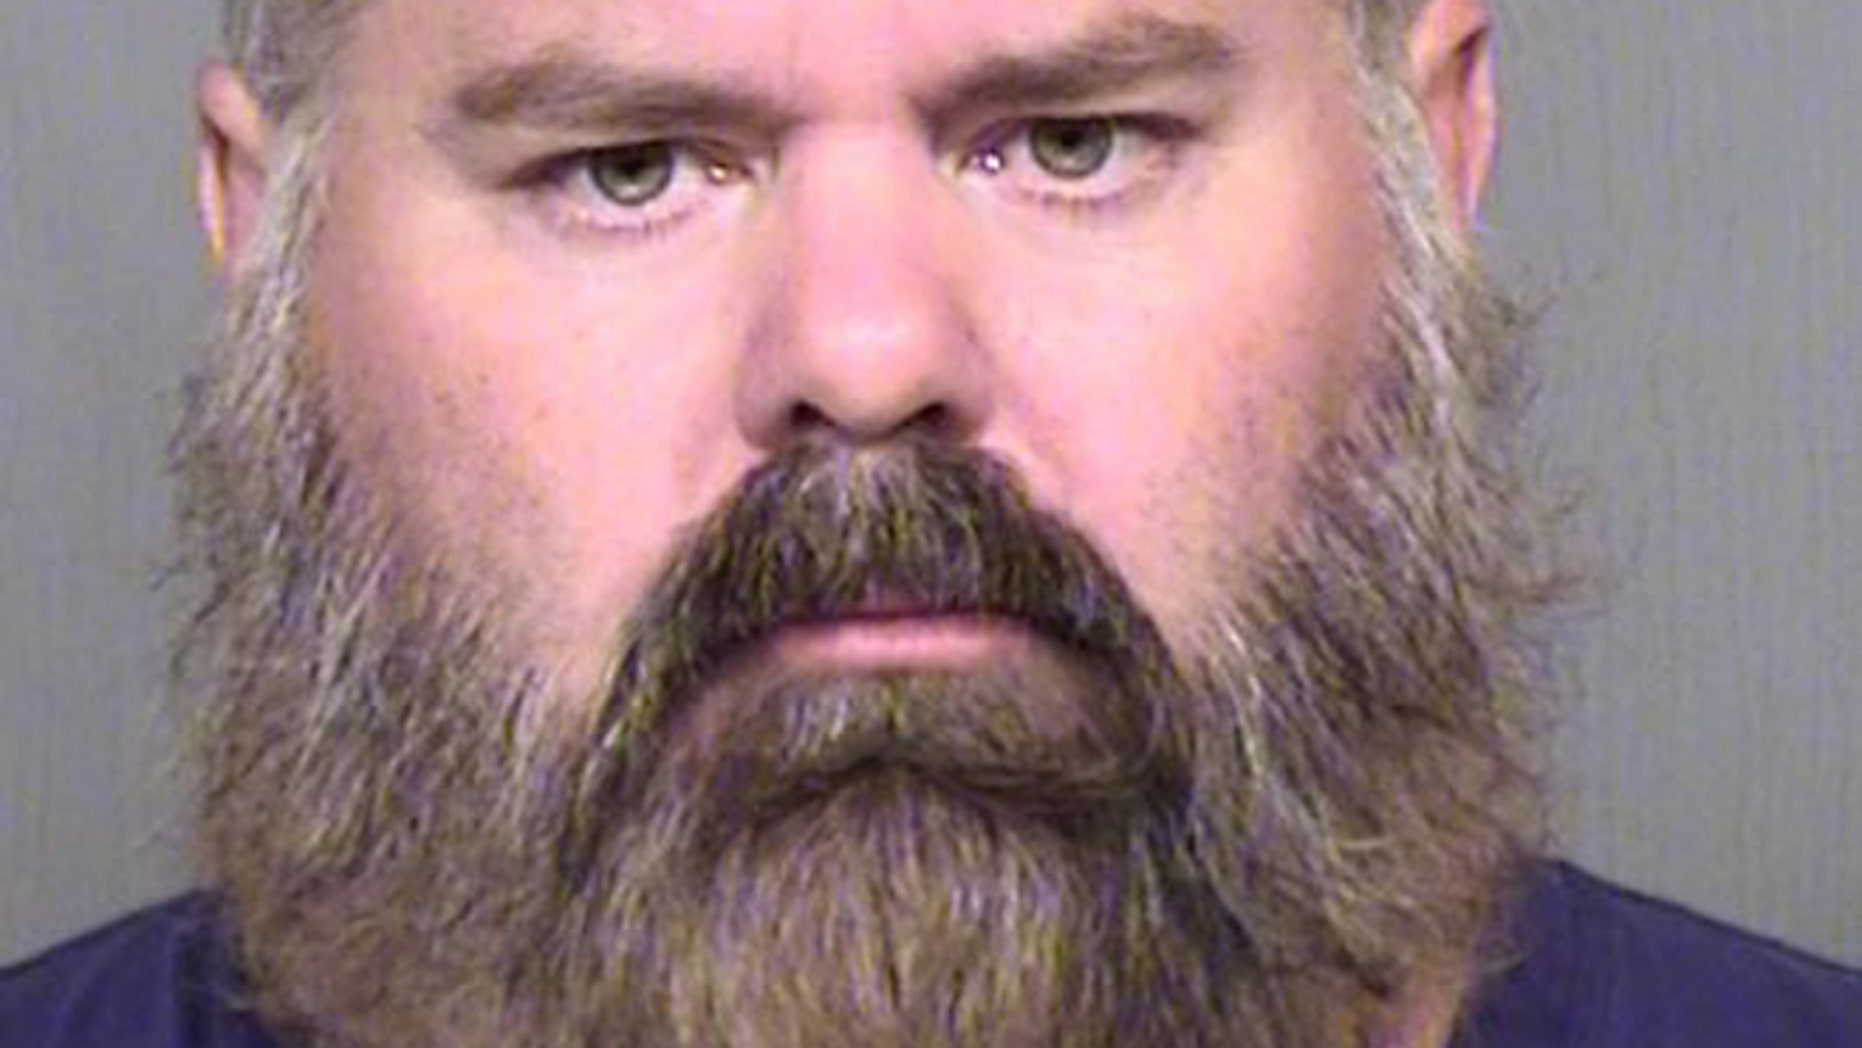 NorthStar Fugitive Recovery owner Brent Farley is charged with criminal trespassing and disorderly conduct